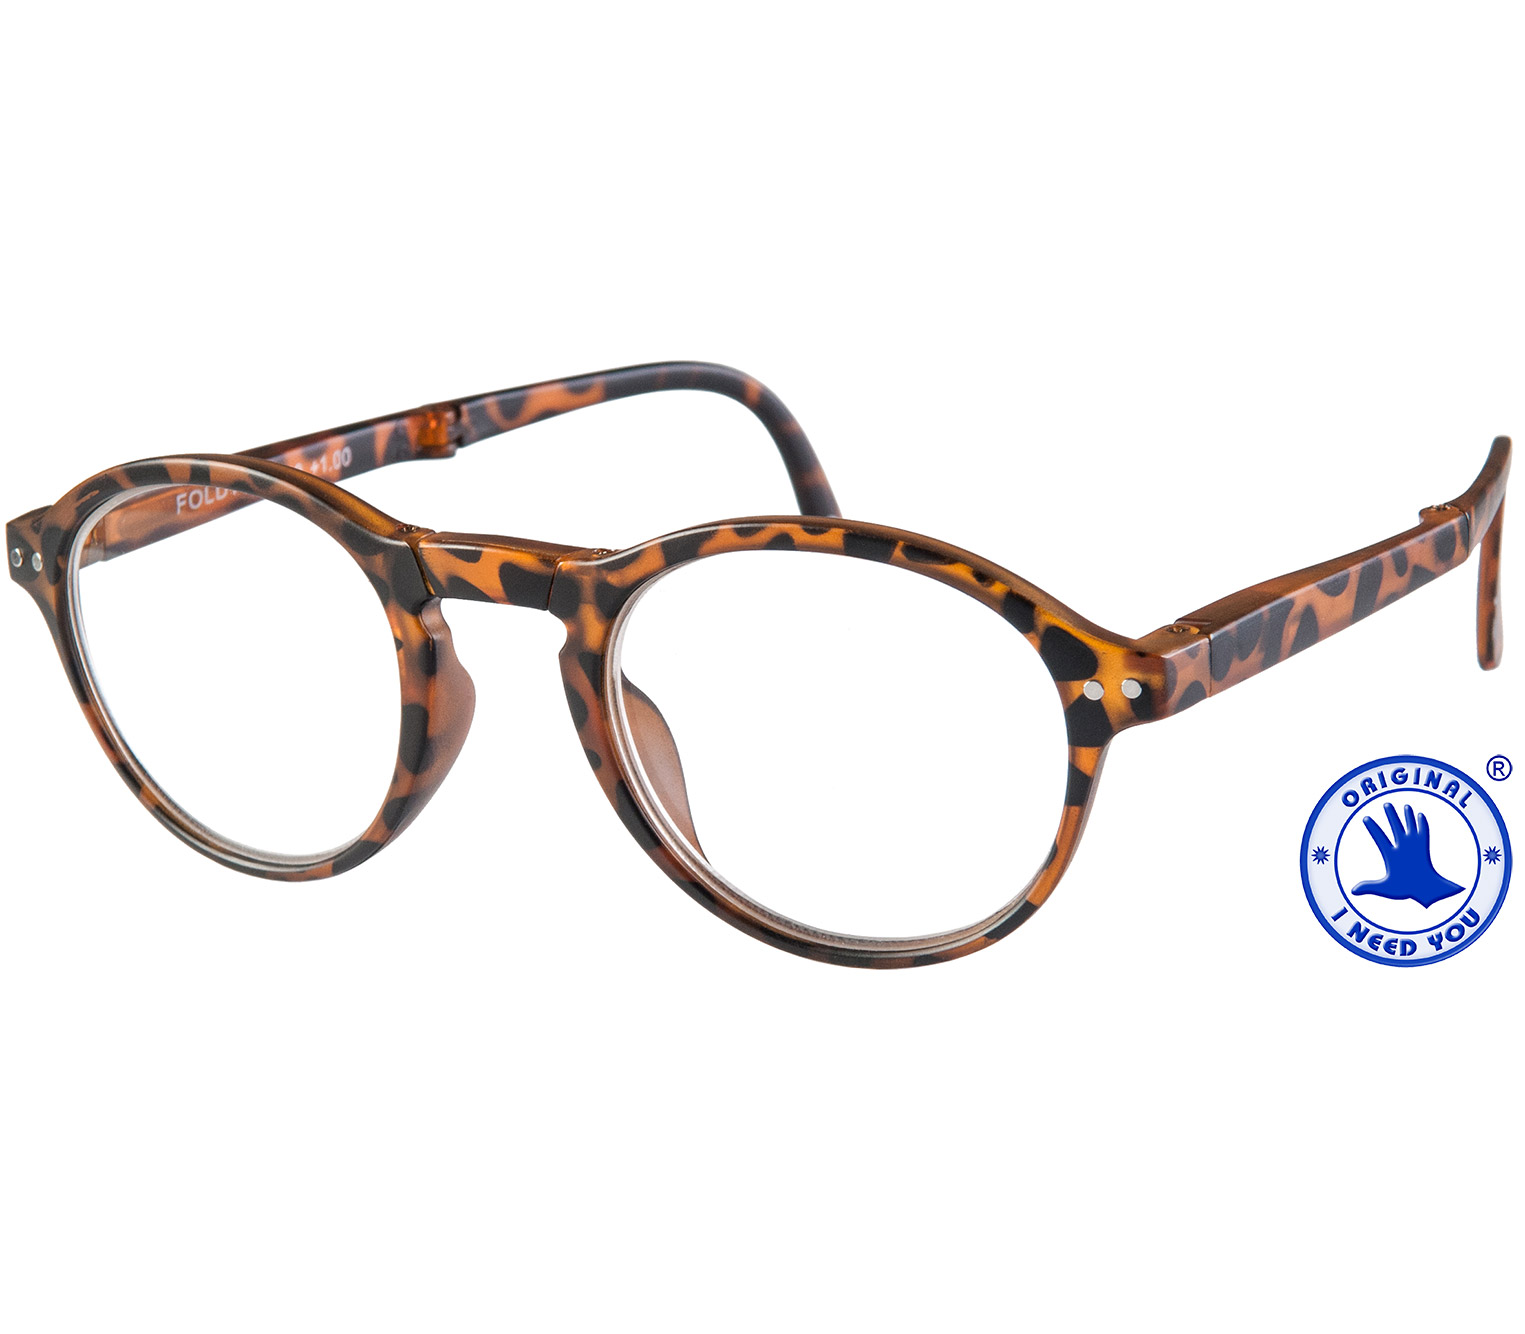 Main Image (Angle) - Foldy (Tortoiseshell) Folding Reading Glasses